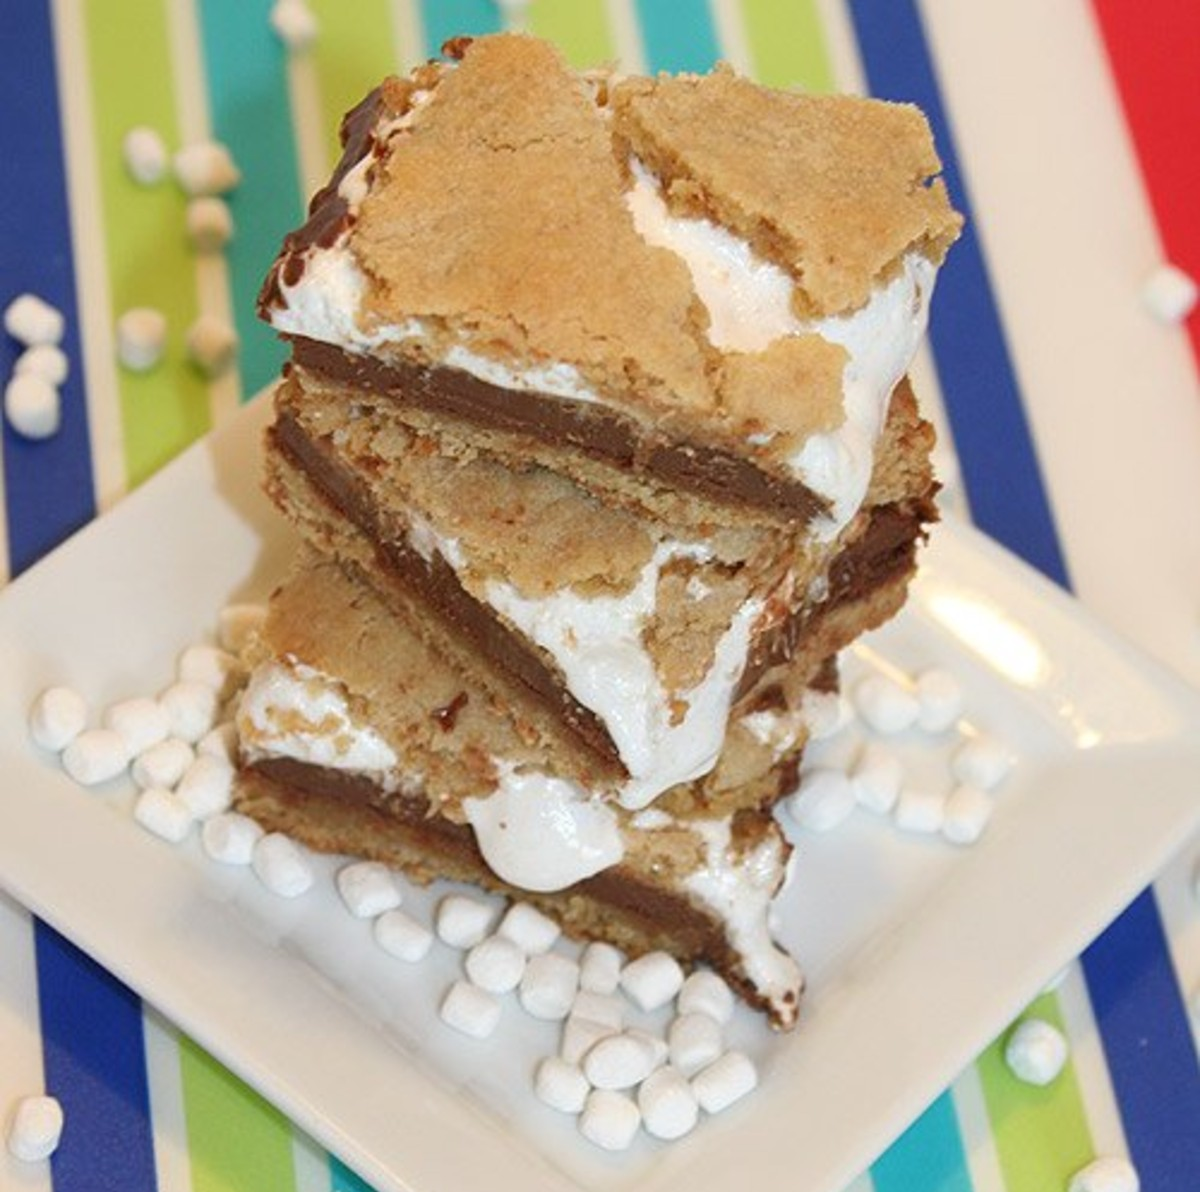 3 peanut butter s'mores bars stacked on each other